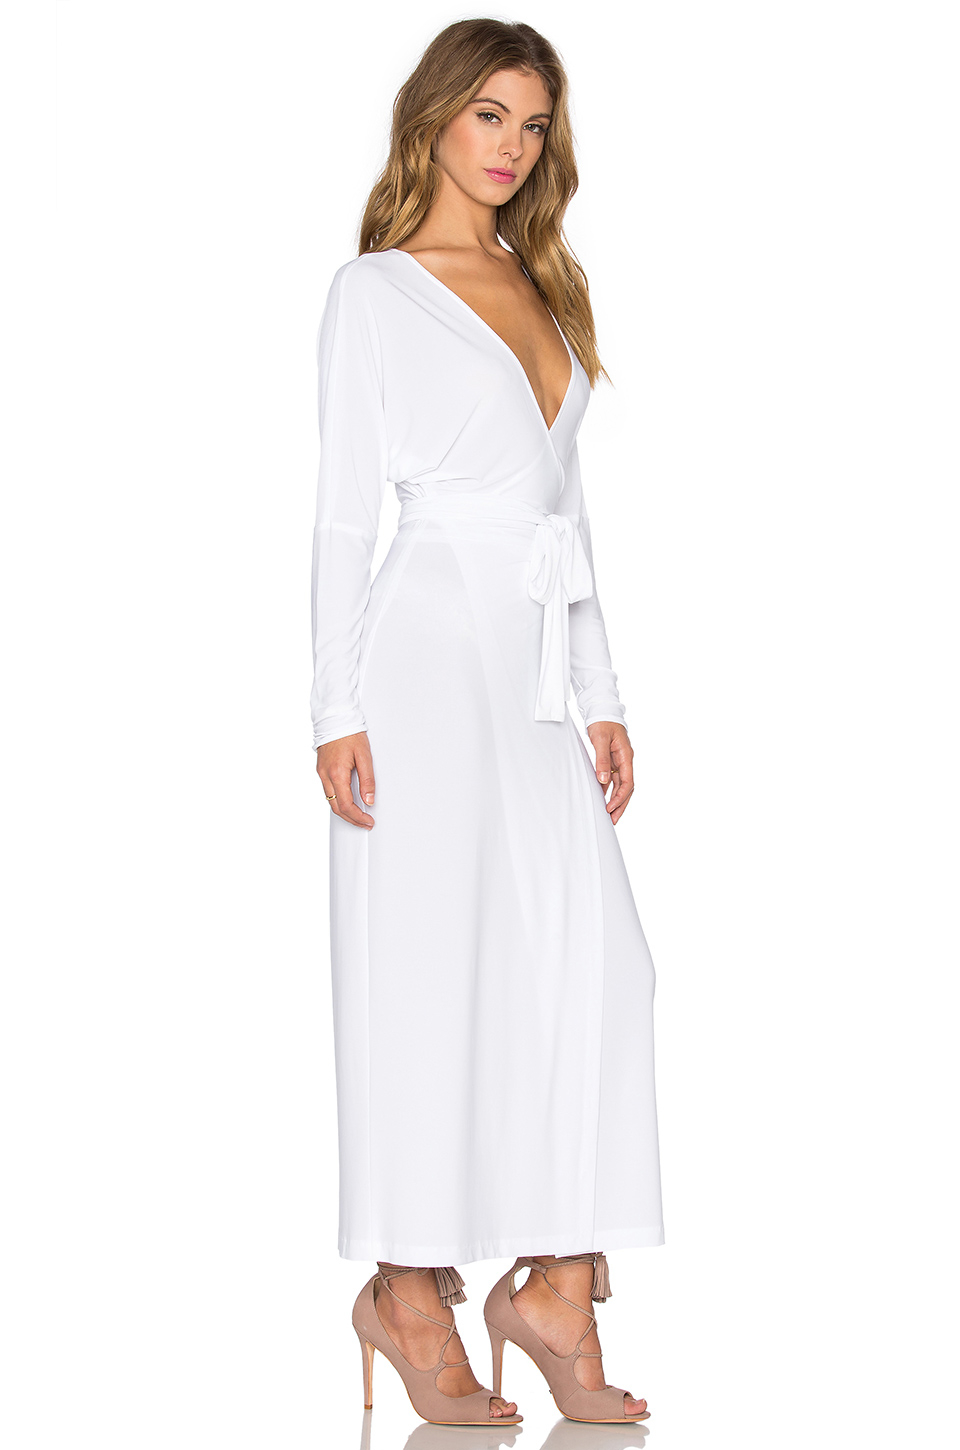 9d23a364458f2c Norma Kamali Dolman Wrap Midi Dress in White - Lyst